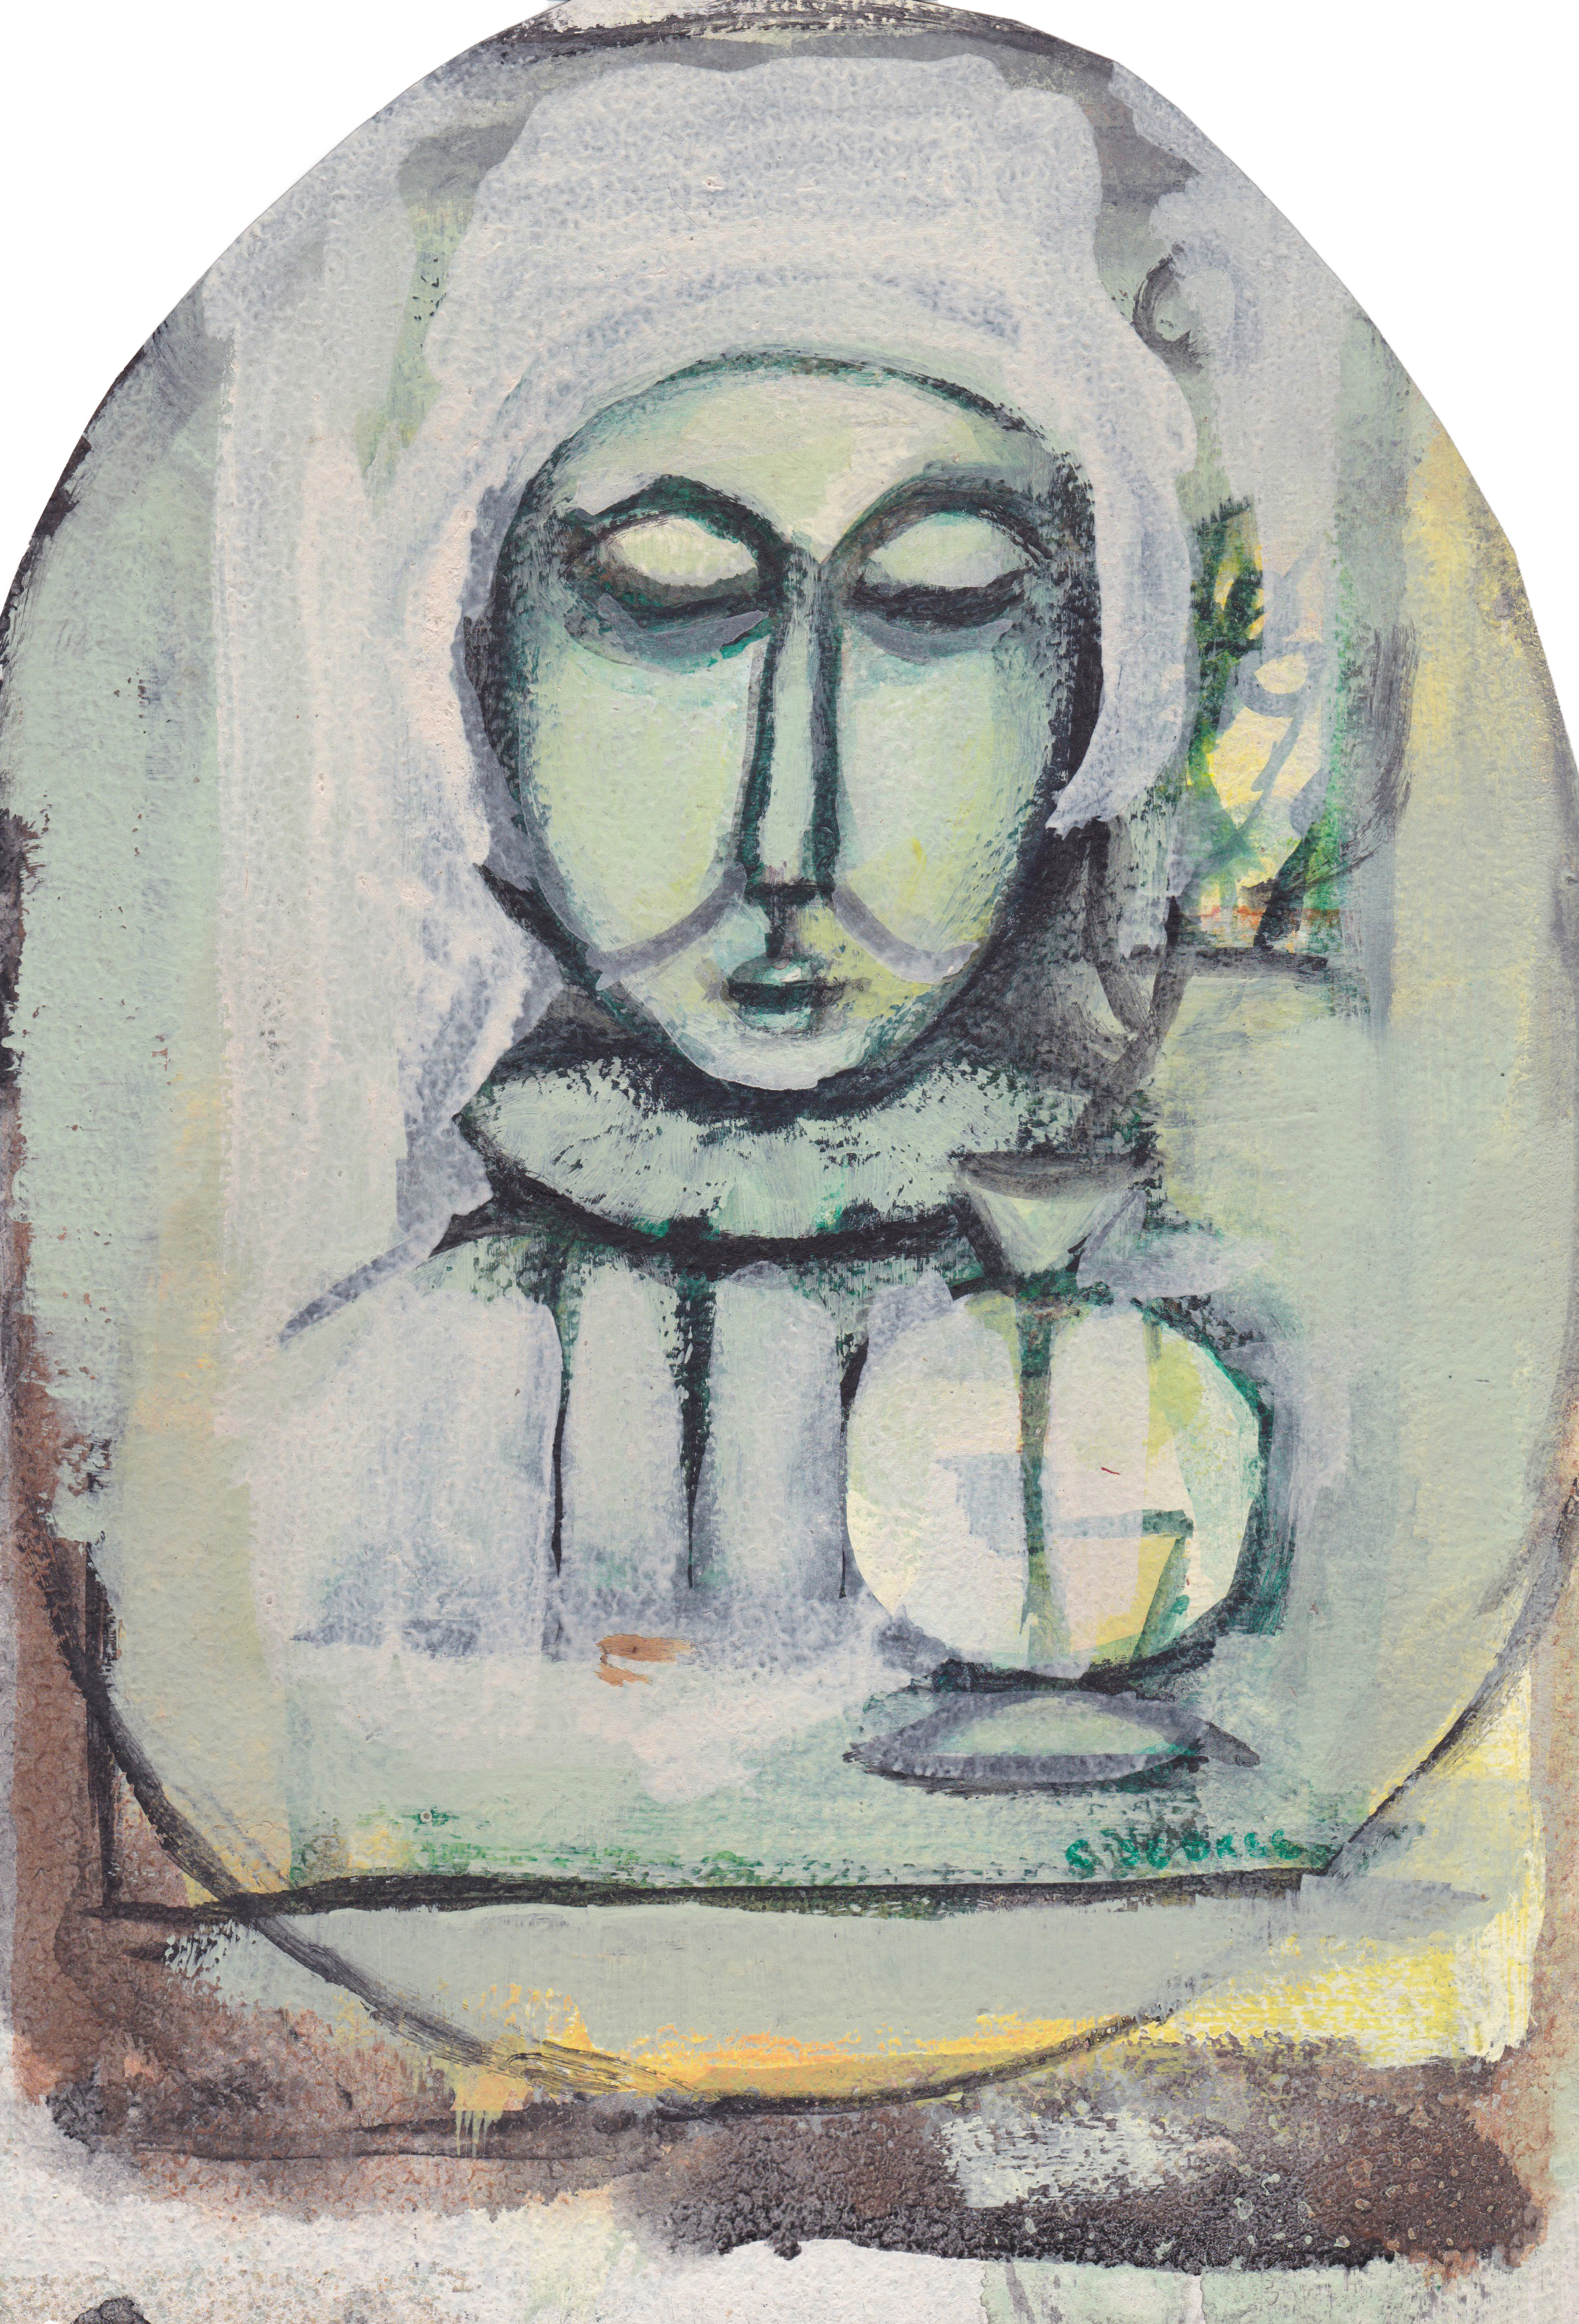 Untitled (Man With a White Vase)